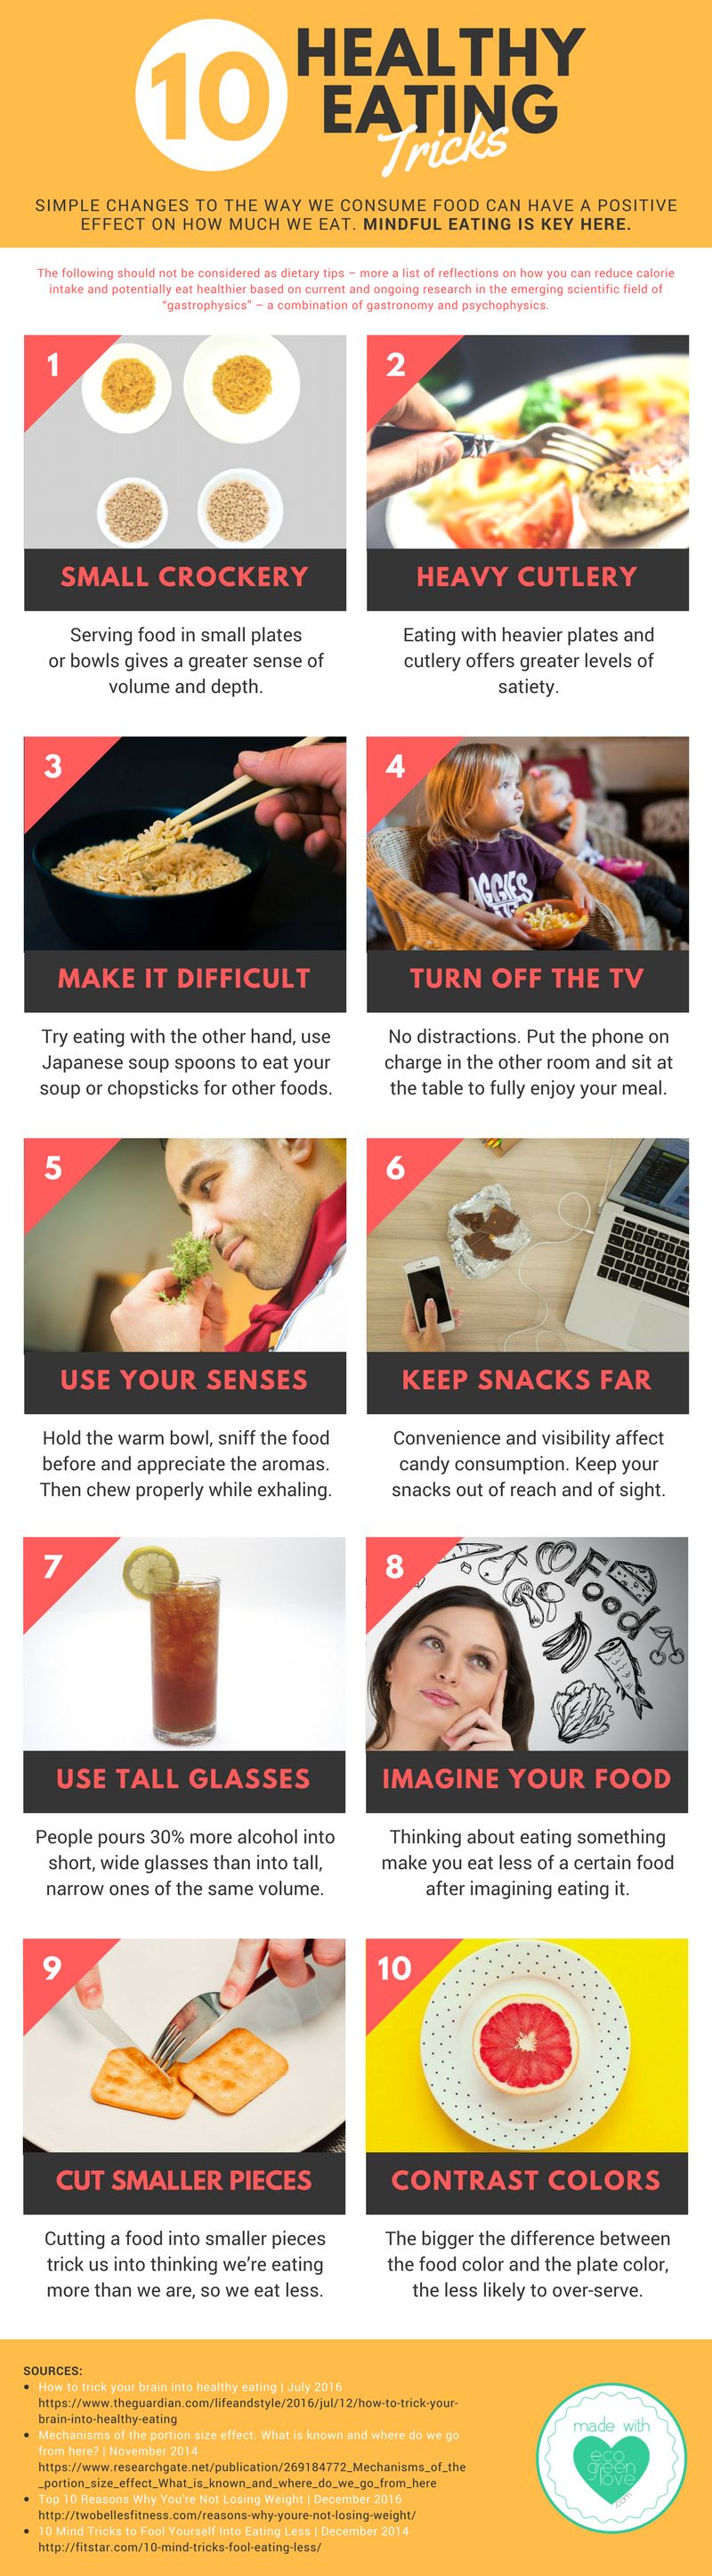 Healthy Eating Tricks [Infographic] | ecogreenlove